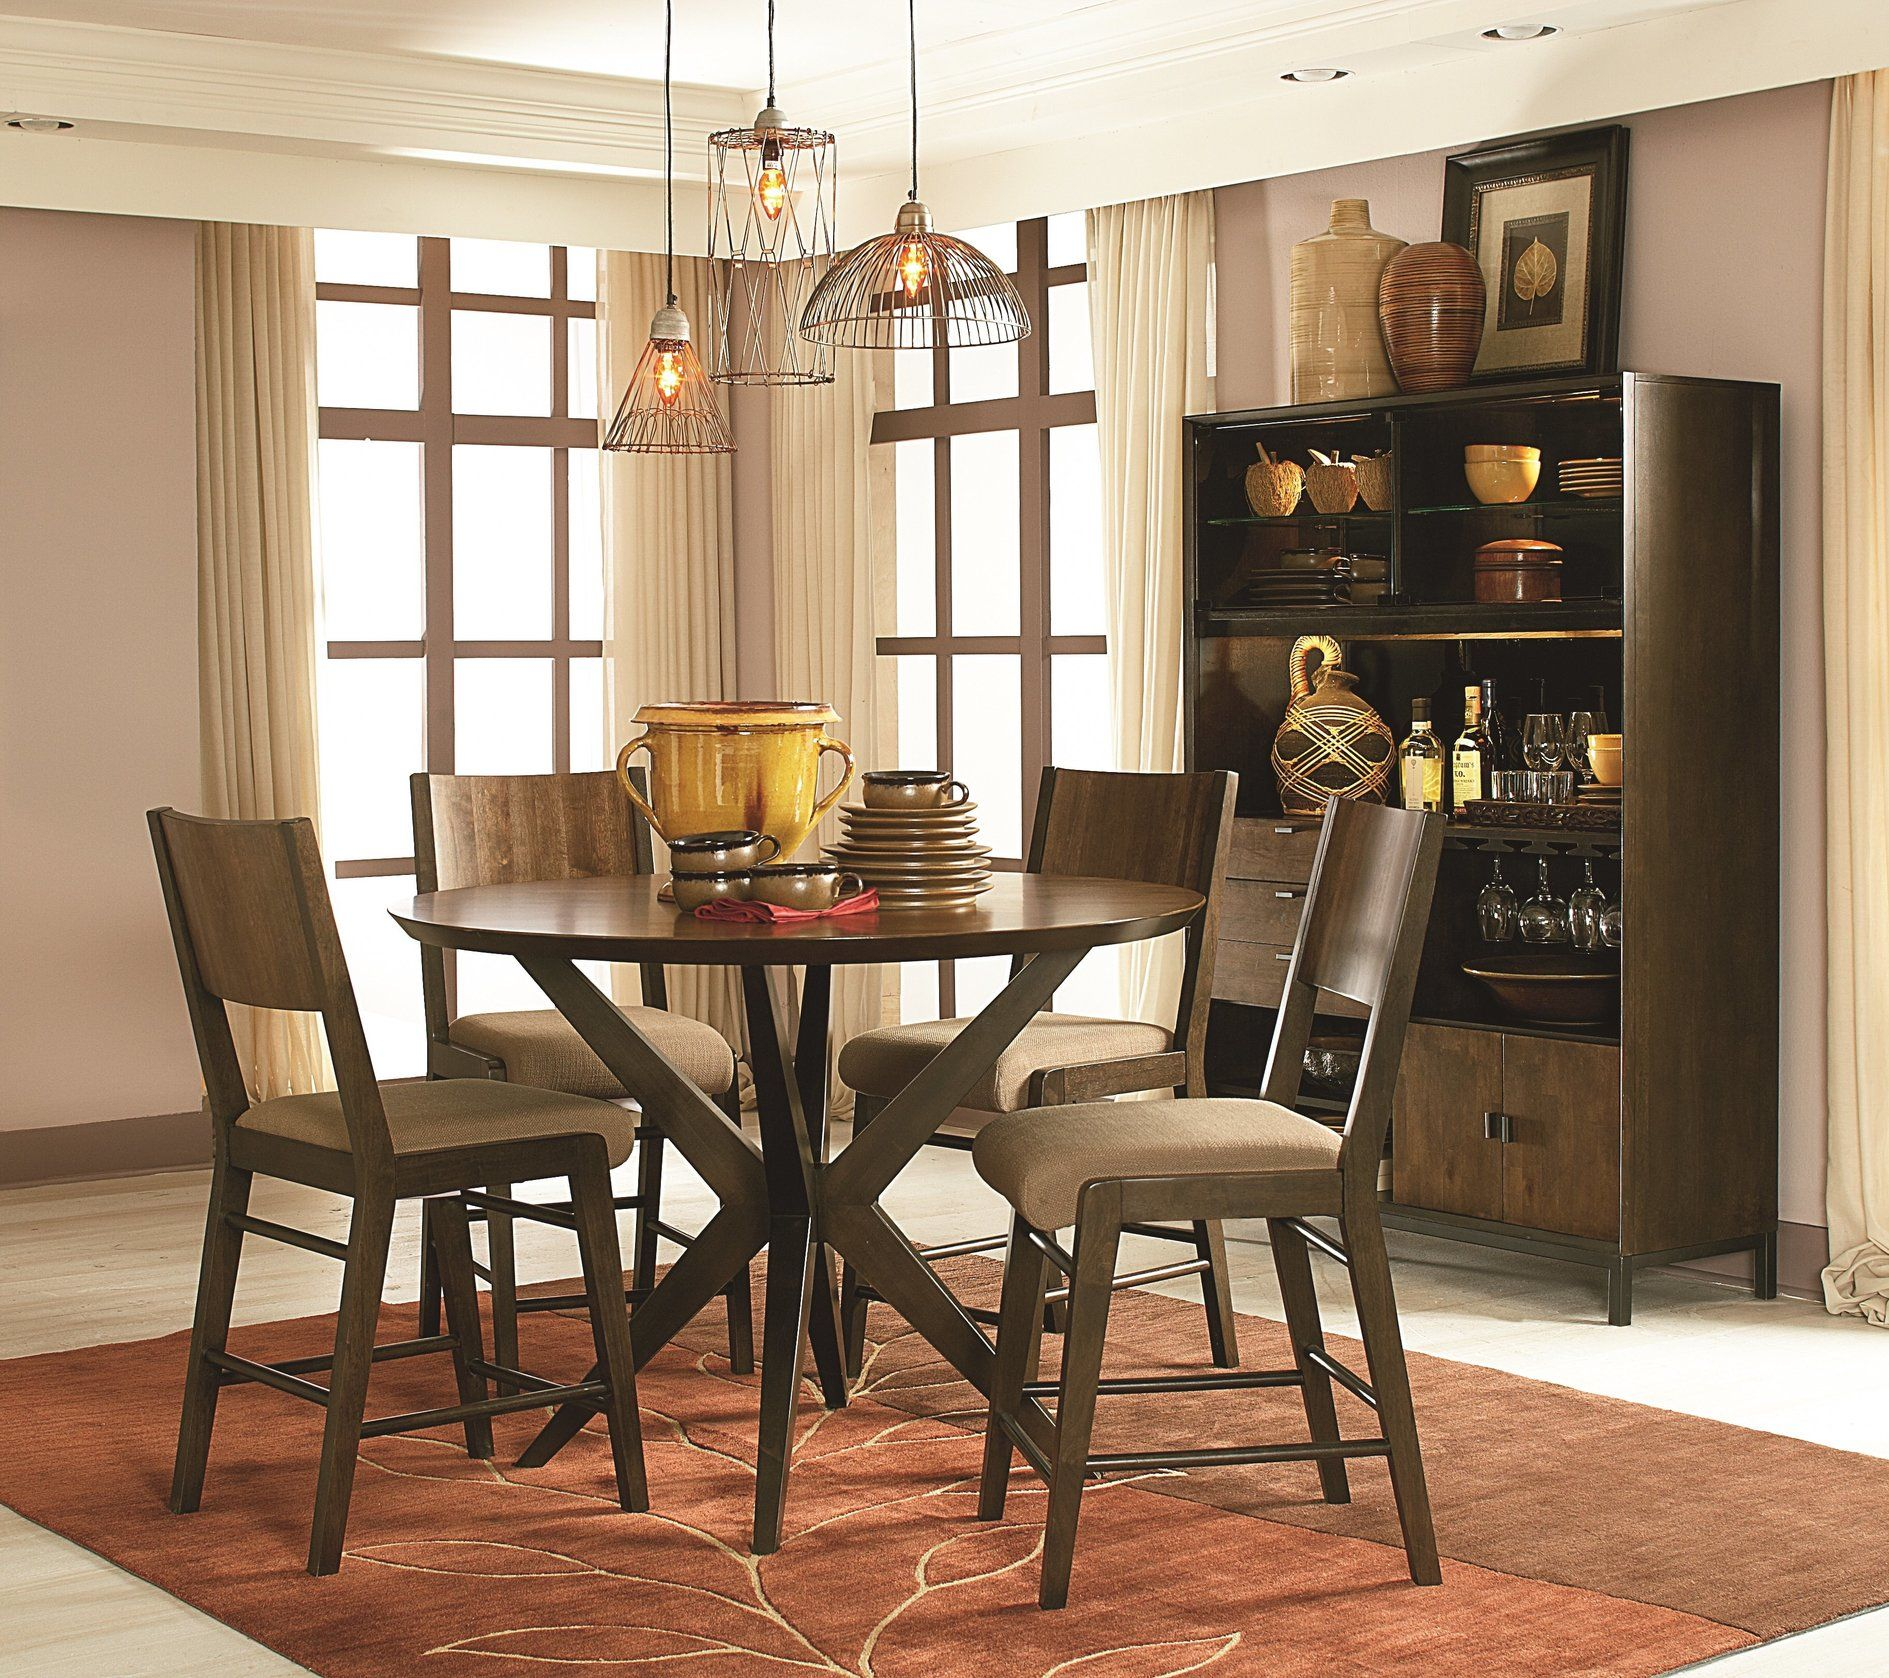 Vintage Pub Style Dining Room Sets Design For Small Rustic Spaces Fascinating Dining Room Table Sets For Small Spaces Decorating Inspiration